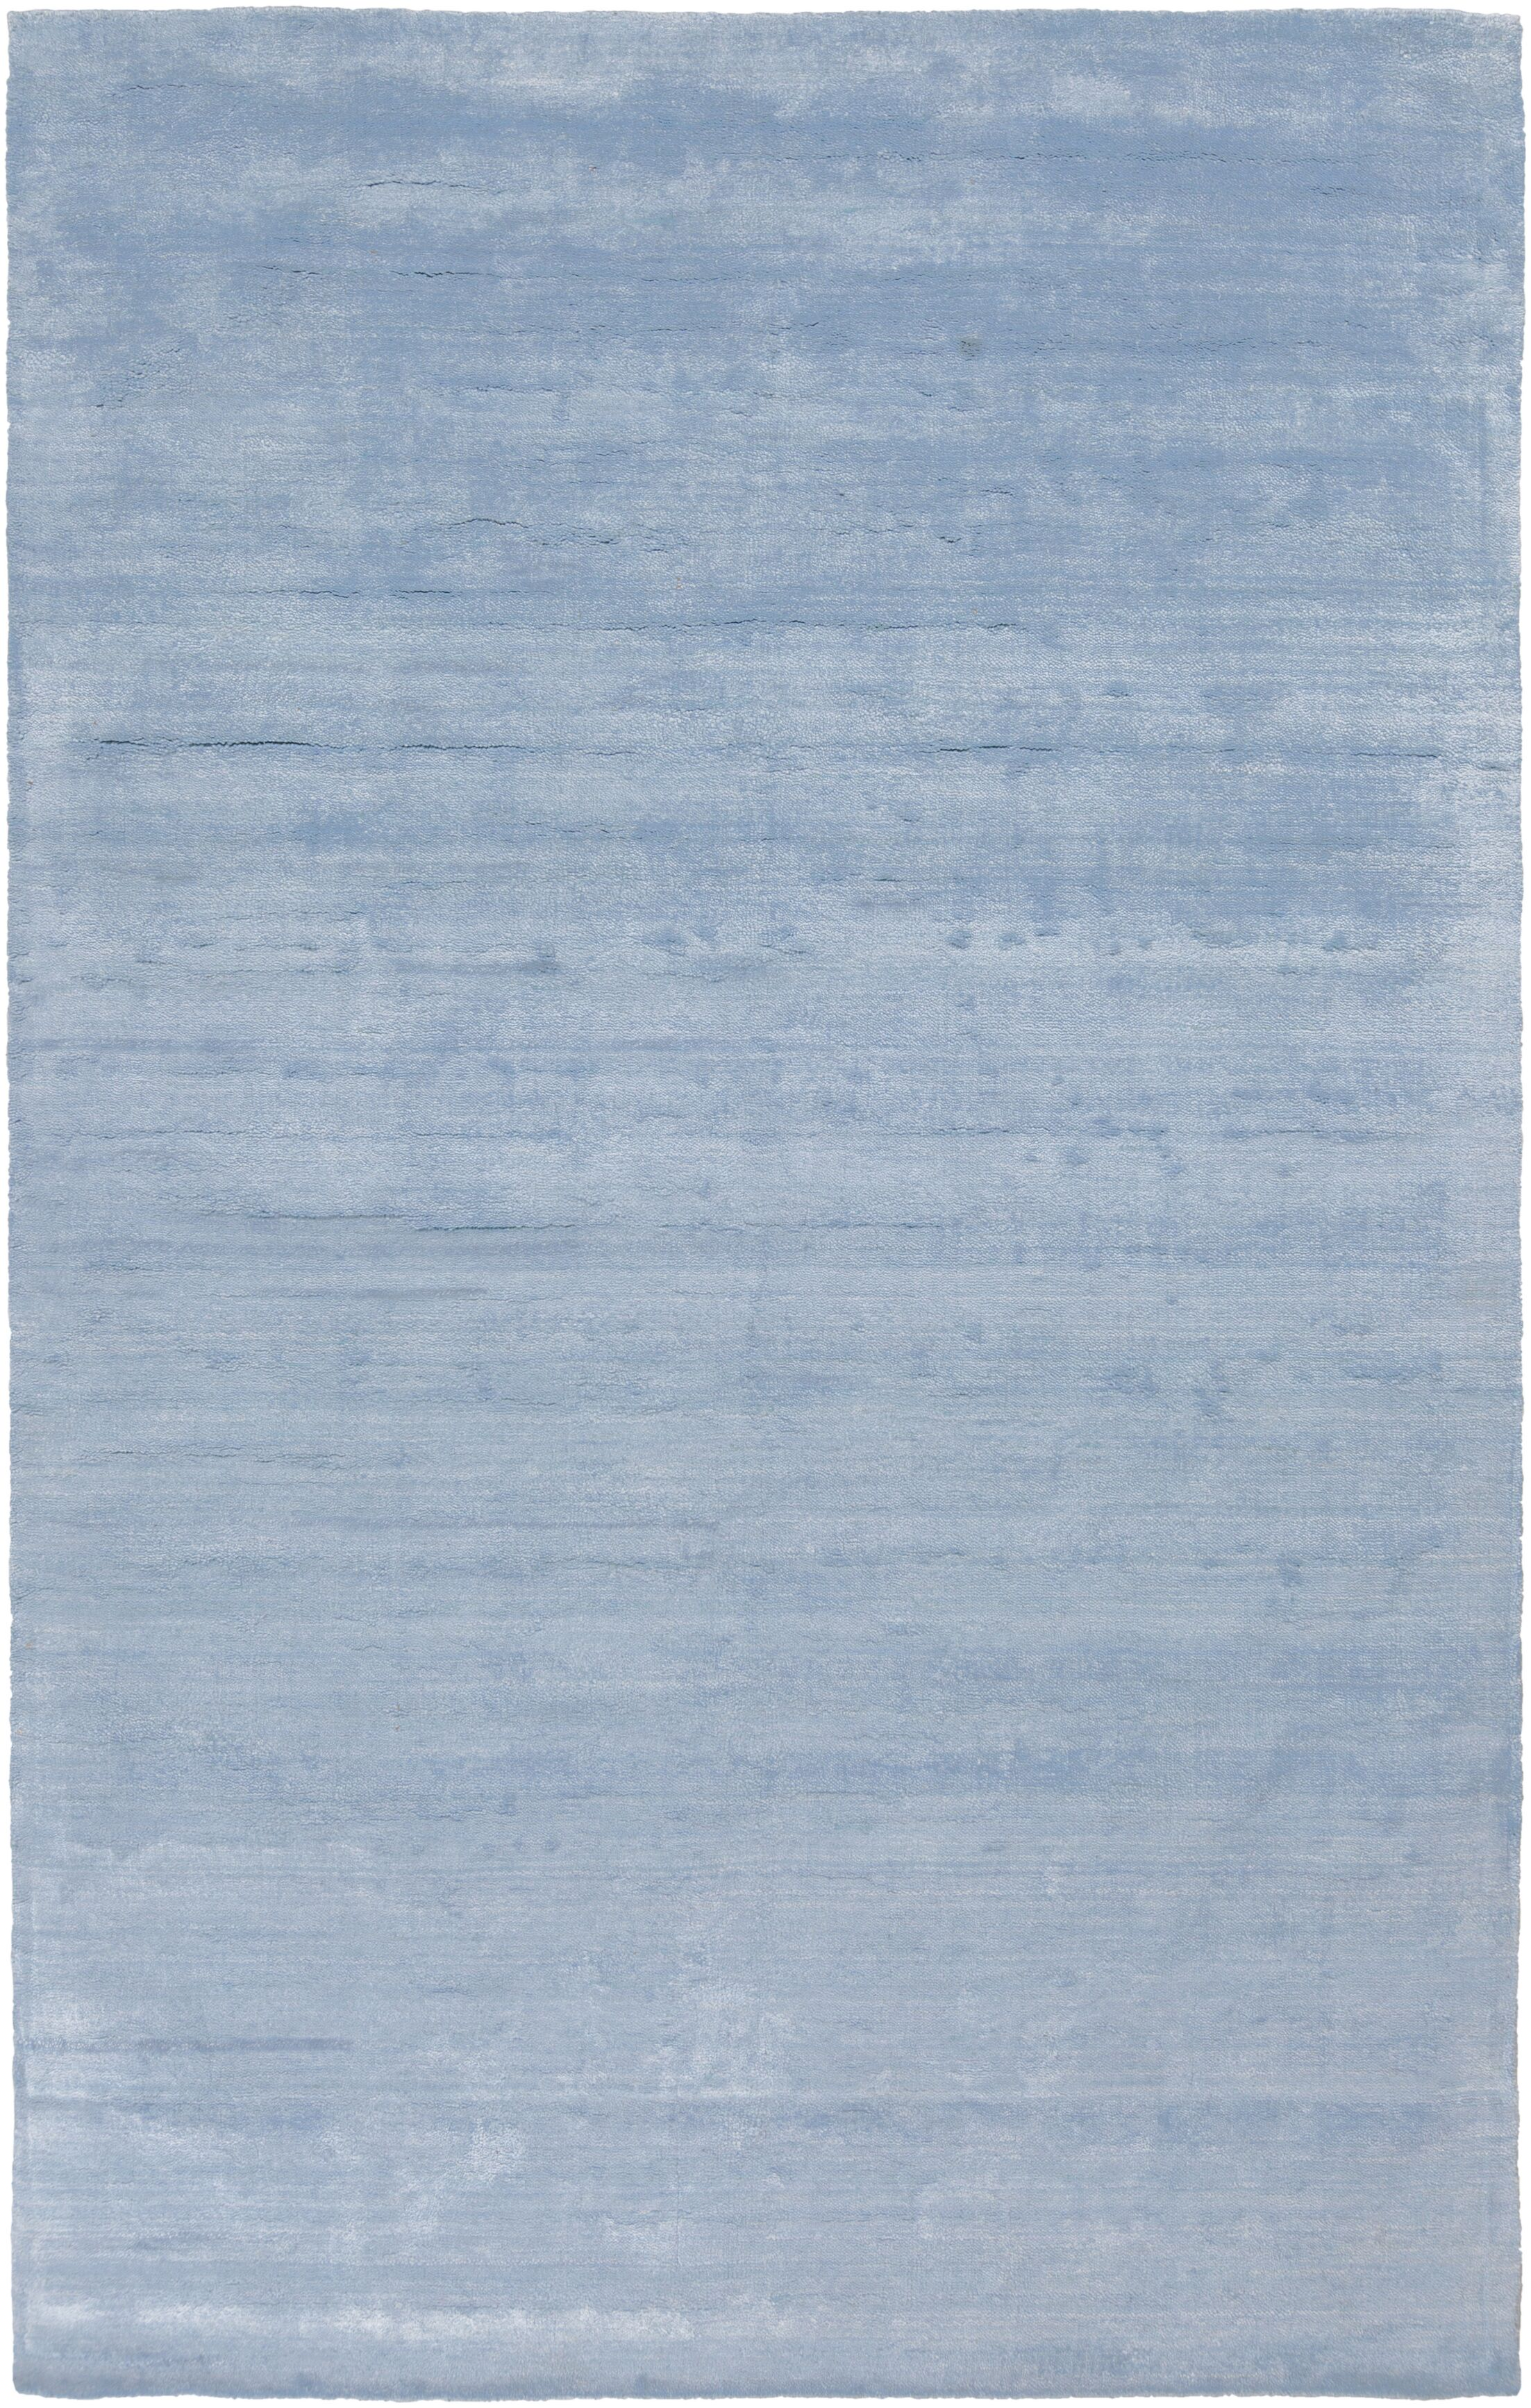 Oxendine Hand Woven Sky Blue Area Rug Rug Size: Rectangle 8' x 10'